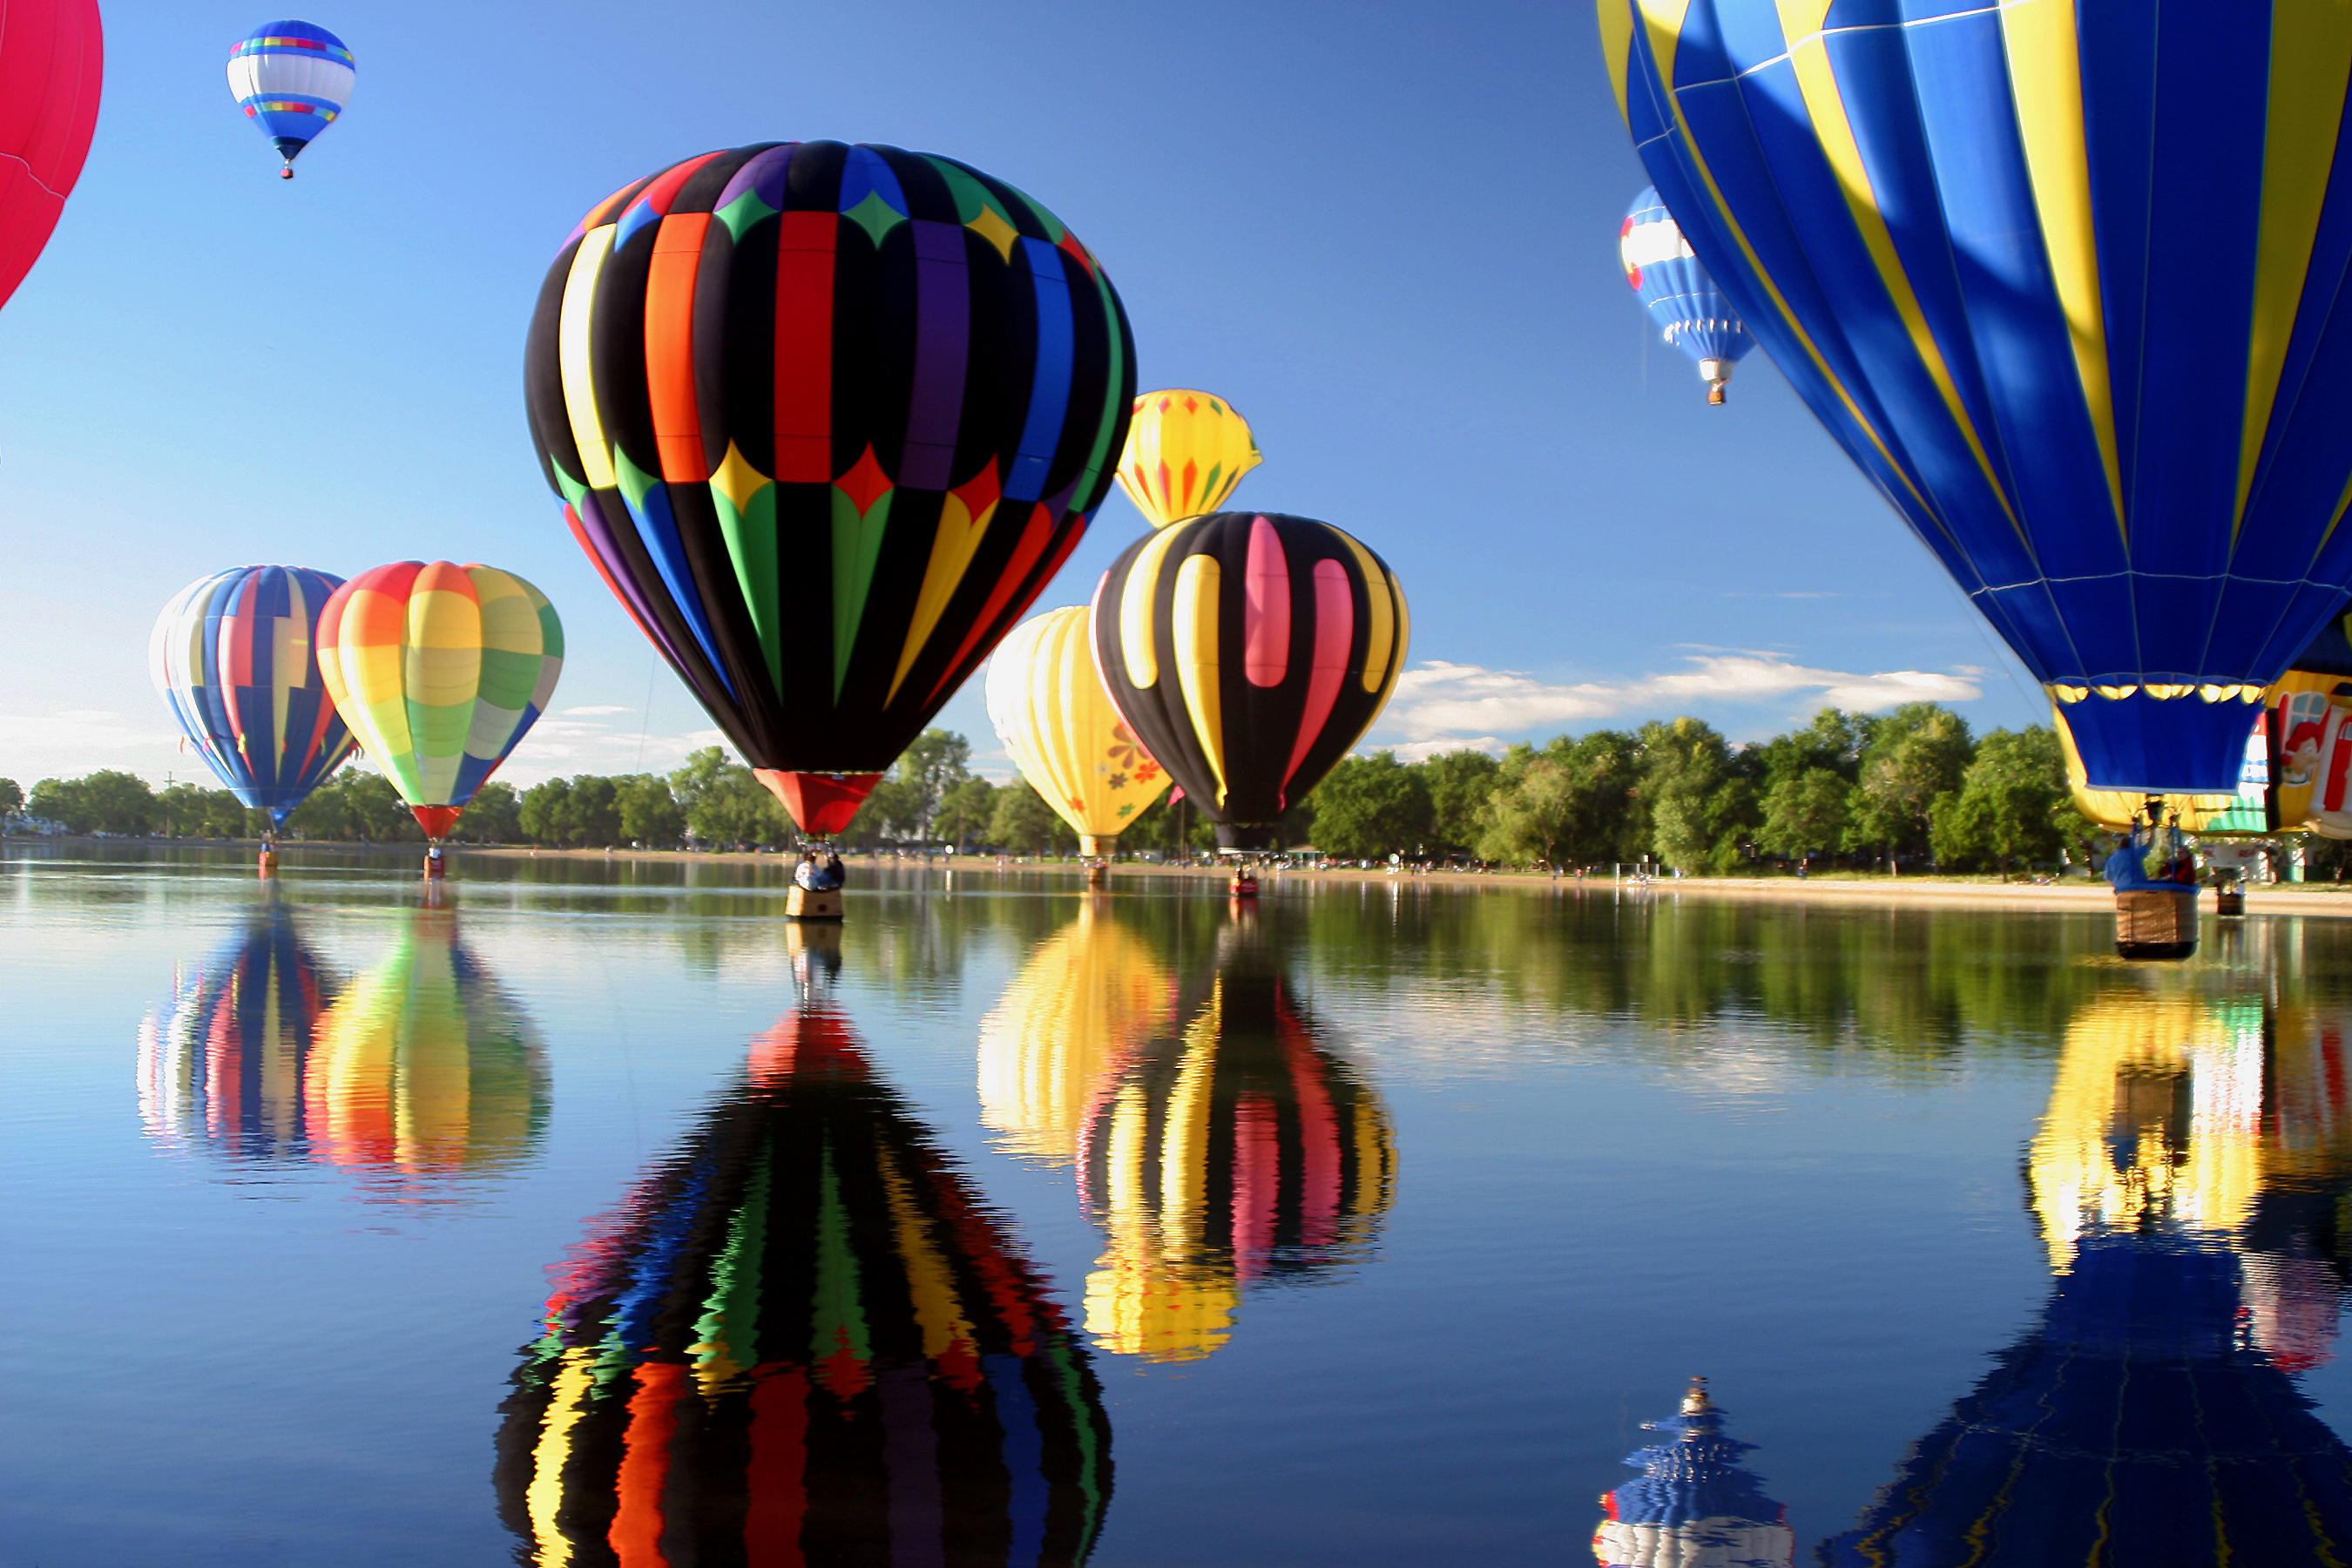 Hot air balloons for sale - Blastvalve Ballooning